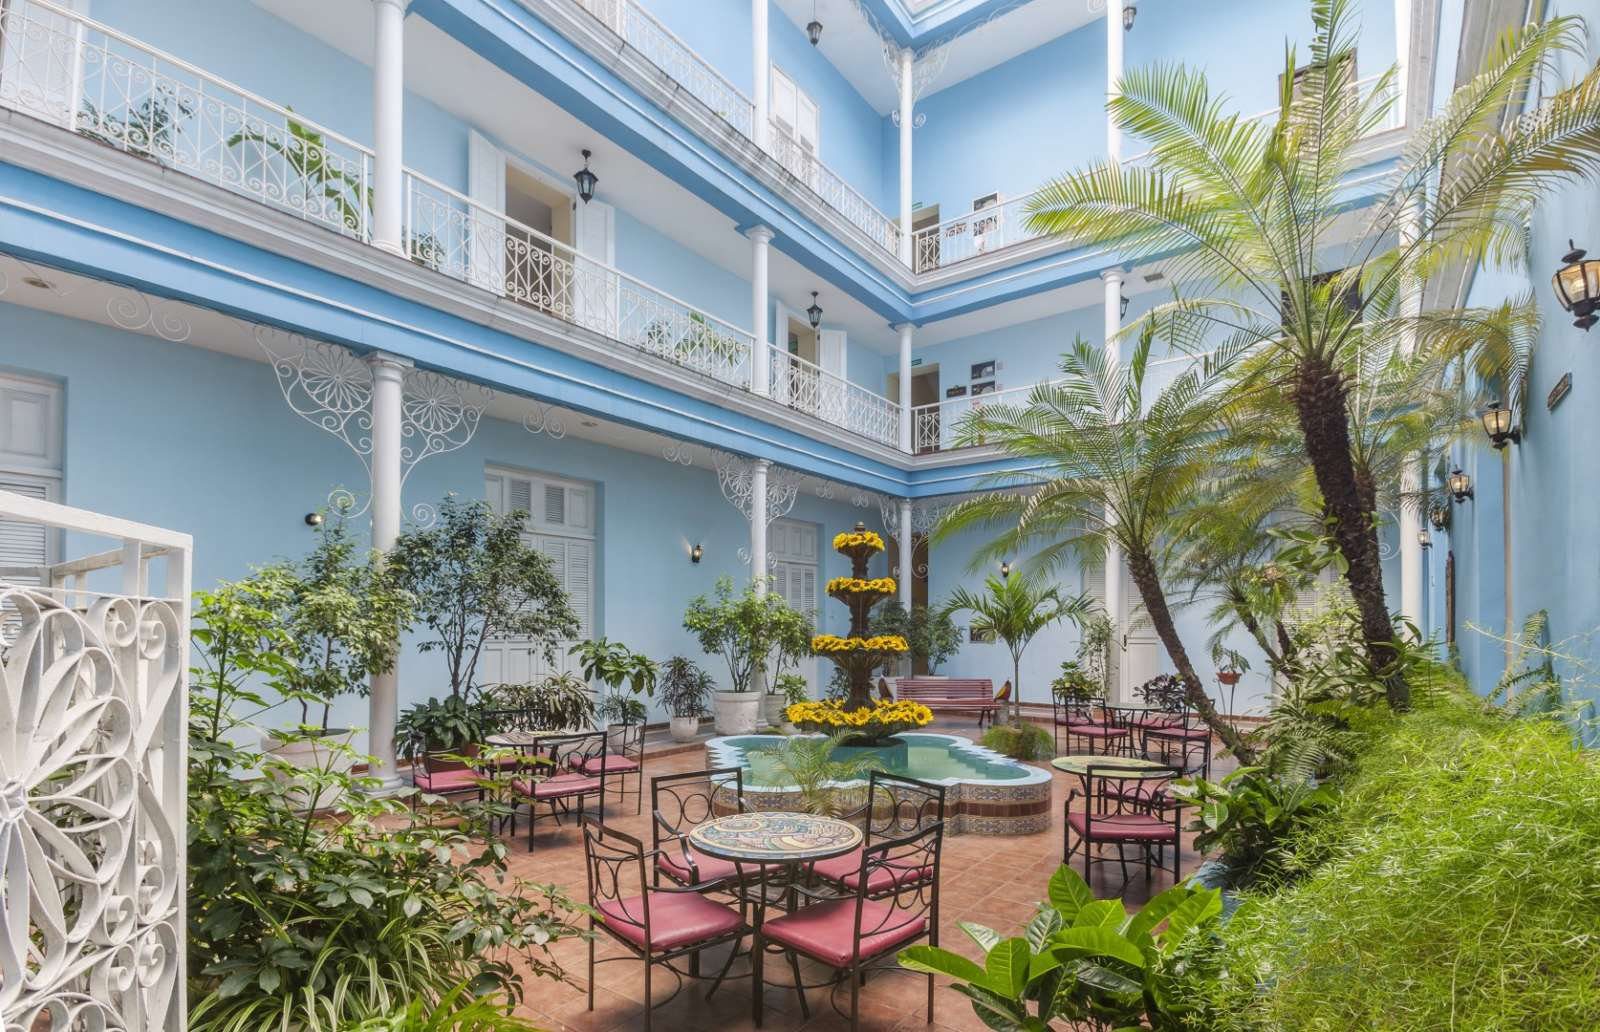 Courtyard at the Melia Union hotel in Cienfuegos